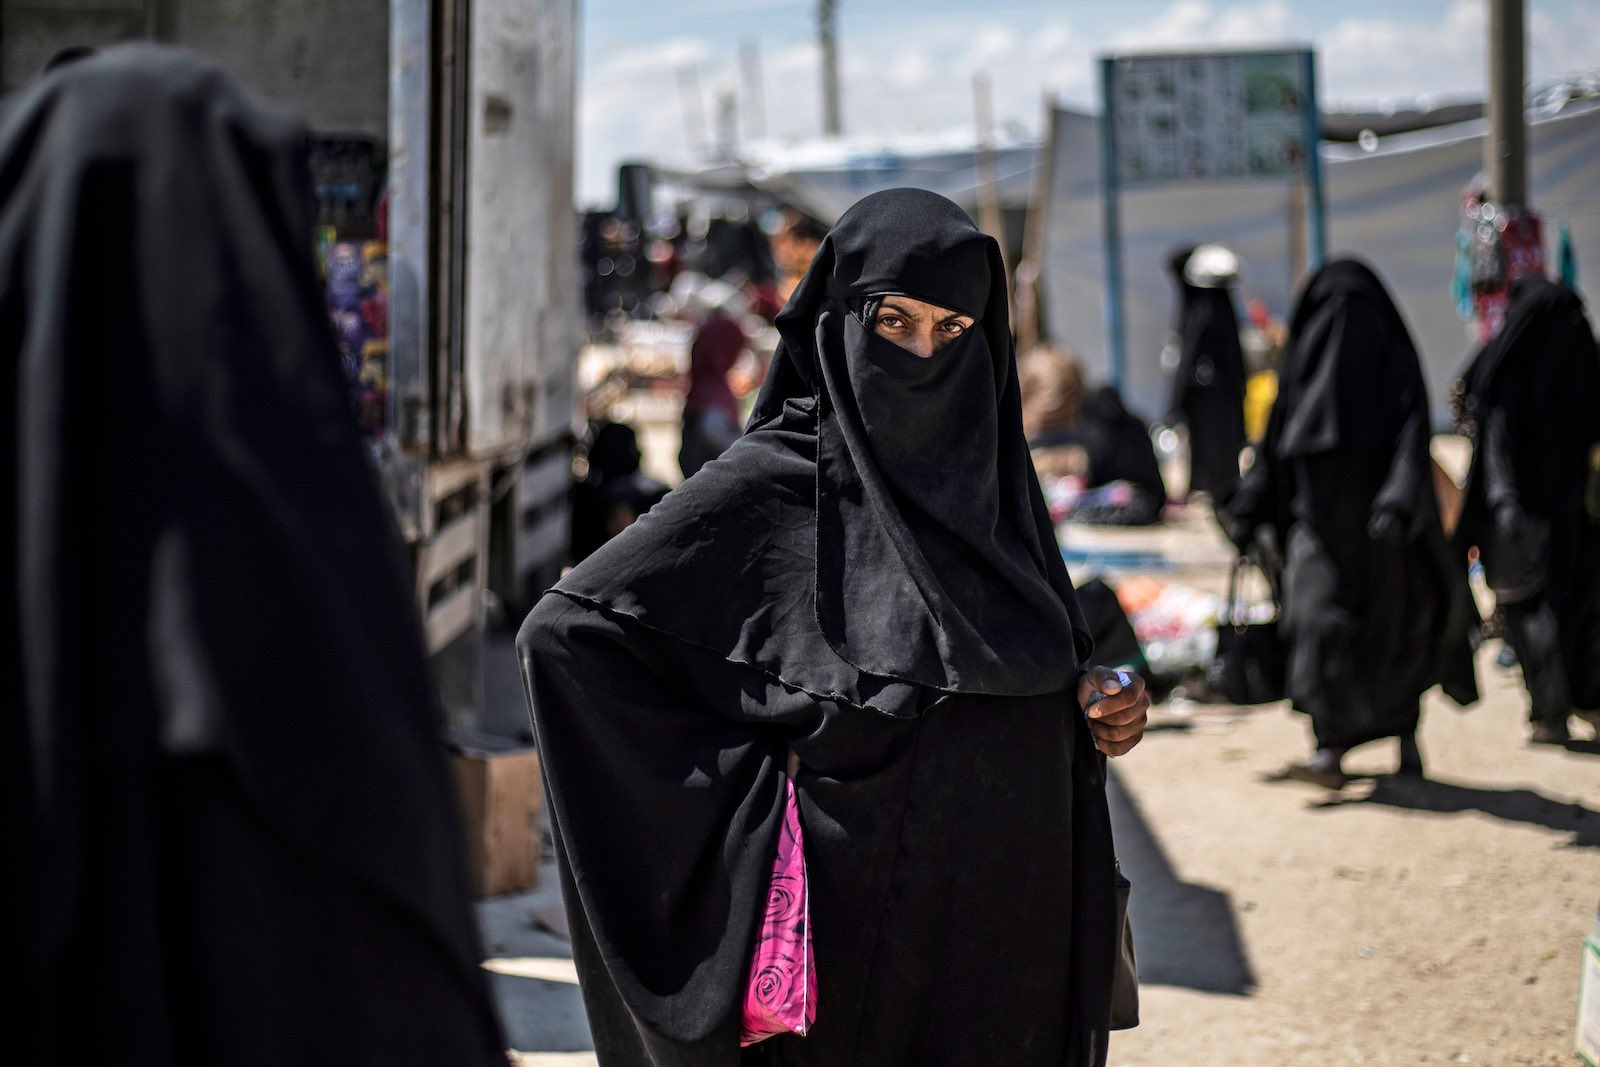 Behind the Veil: Women in jihad after the caliphate